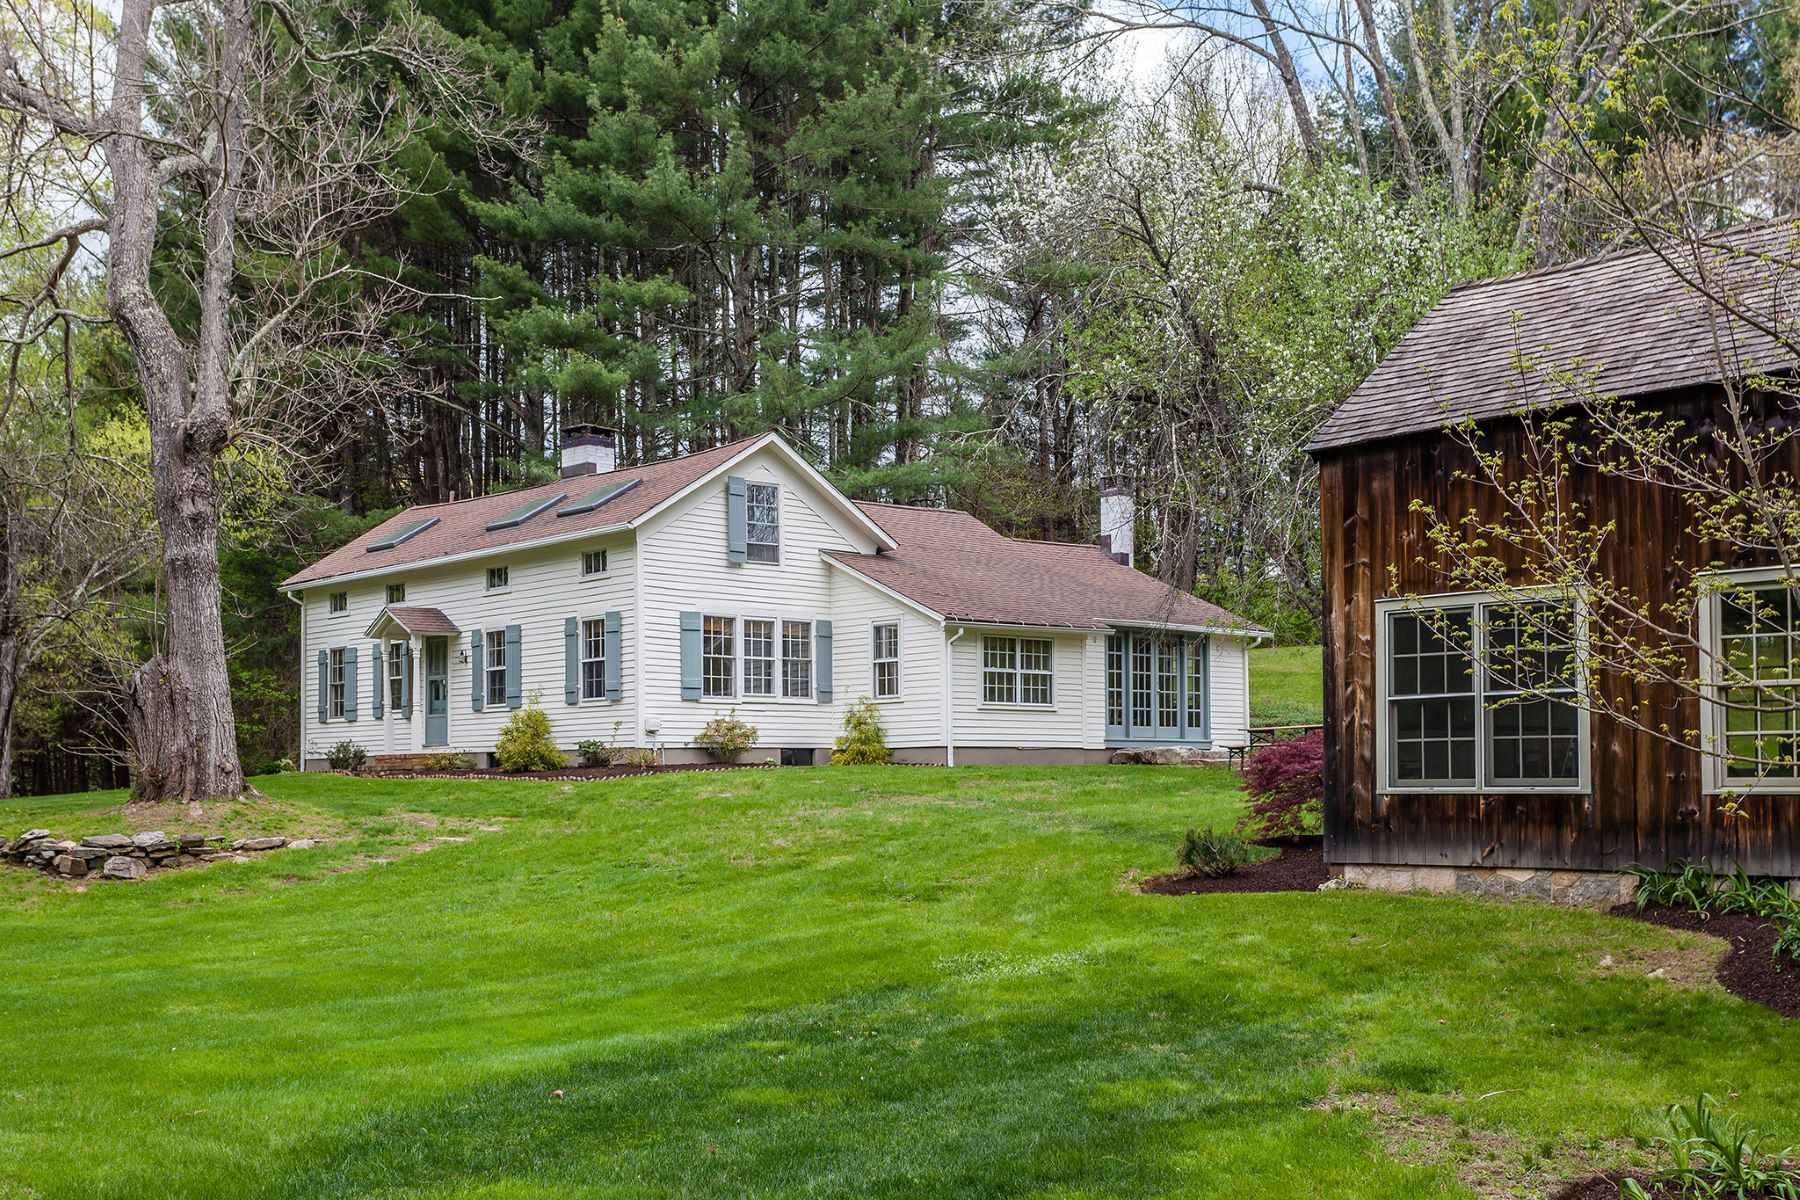 Single Family Home for Sale at Luxe country retreat on 25 Acres 91 Cherniske Rd New Milford, Connecticut 06776 United States